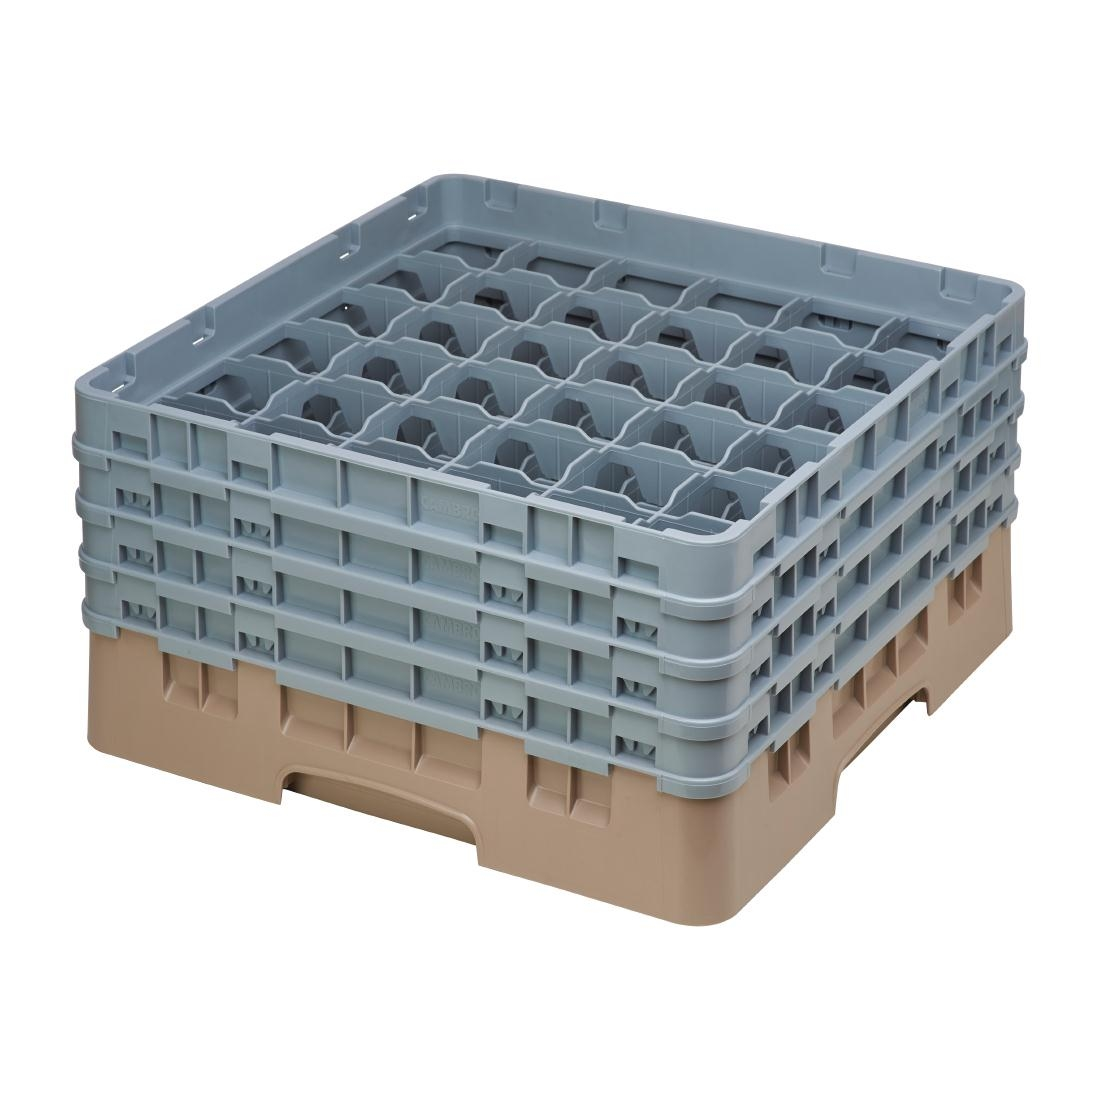 Cambro Camrack Beige 36 Compartments Max Glass Height 215mm